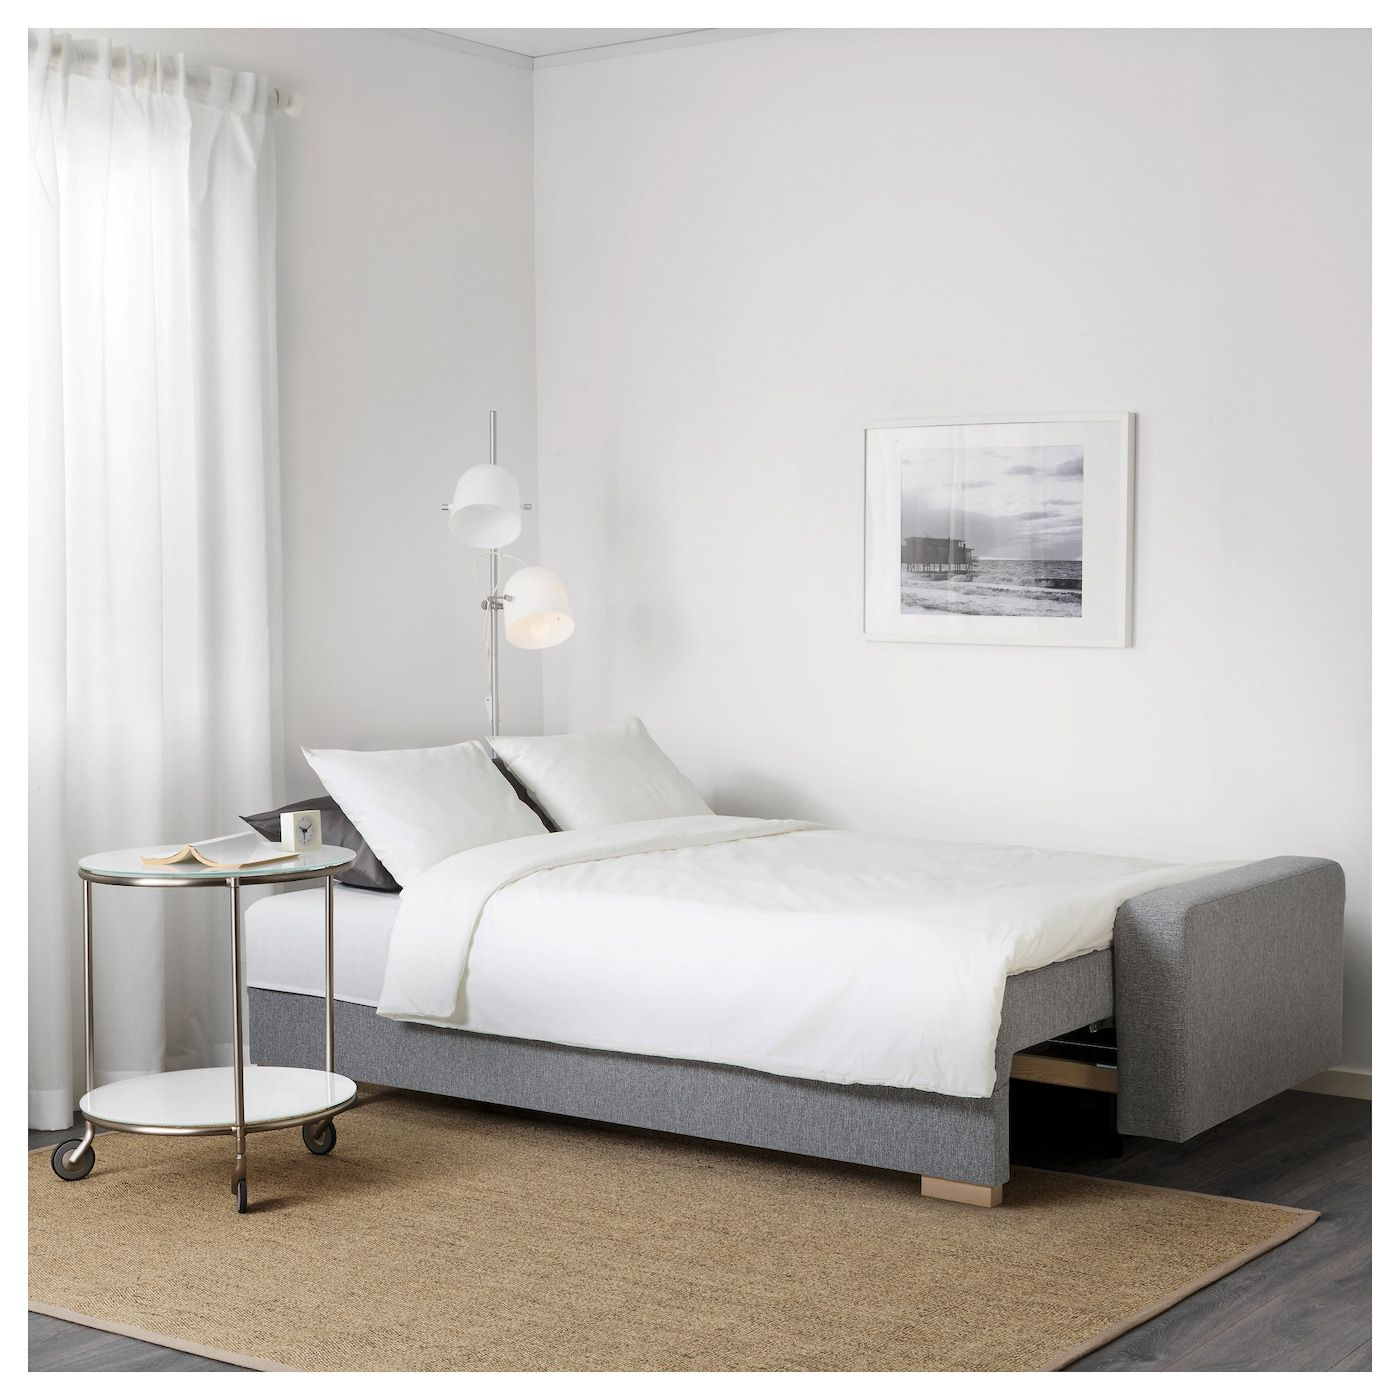 Ikea Gralviken Canape 3 Places Convertible Canape 3 Places Disposition De Meubles De Salon Disposition Des Meubles